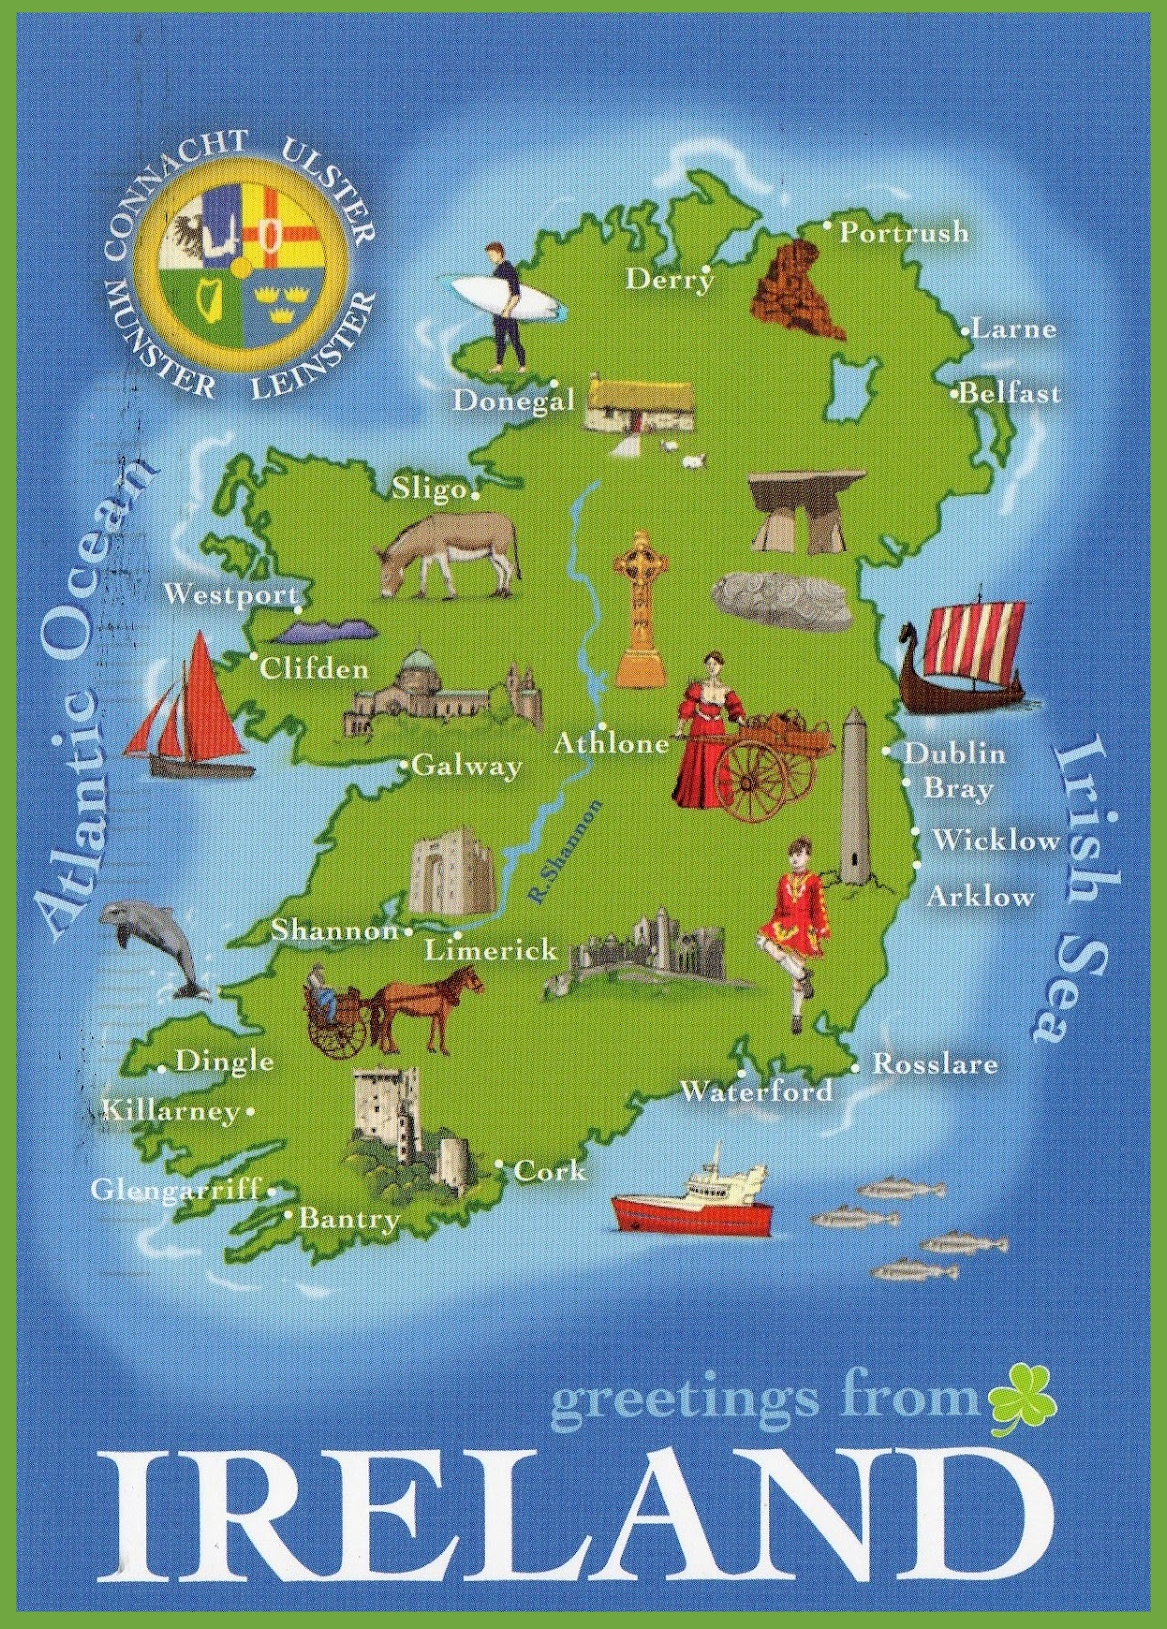 Map Of Ireland Showing Athlone.Ireland Tourist Map